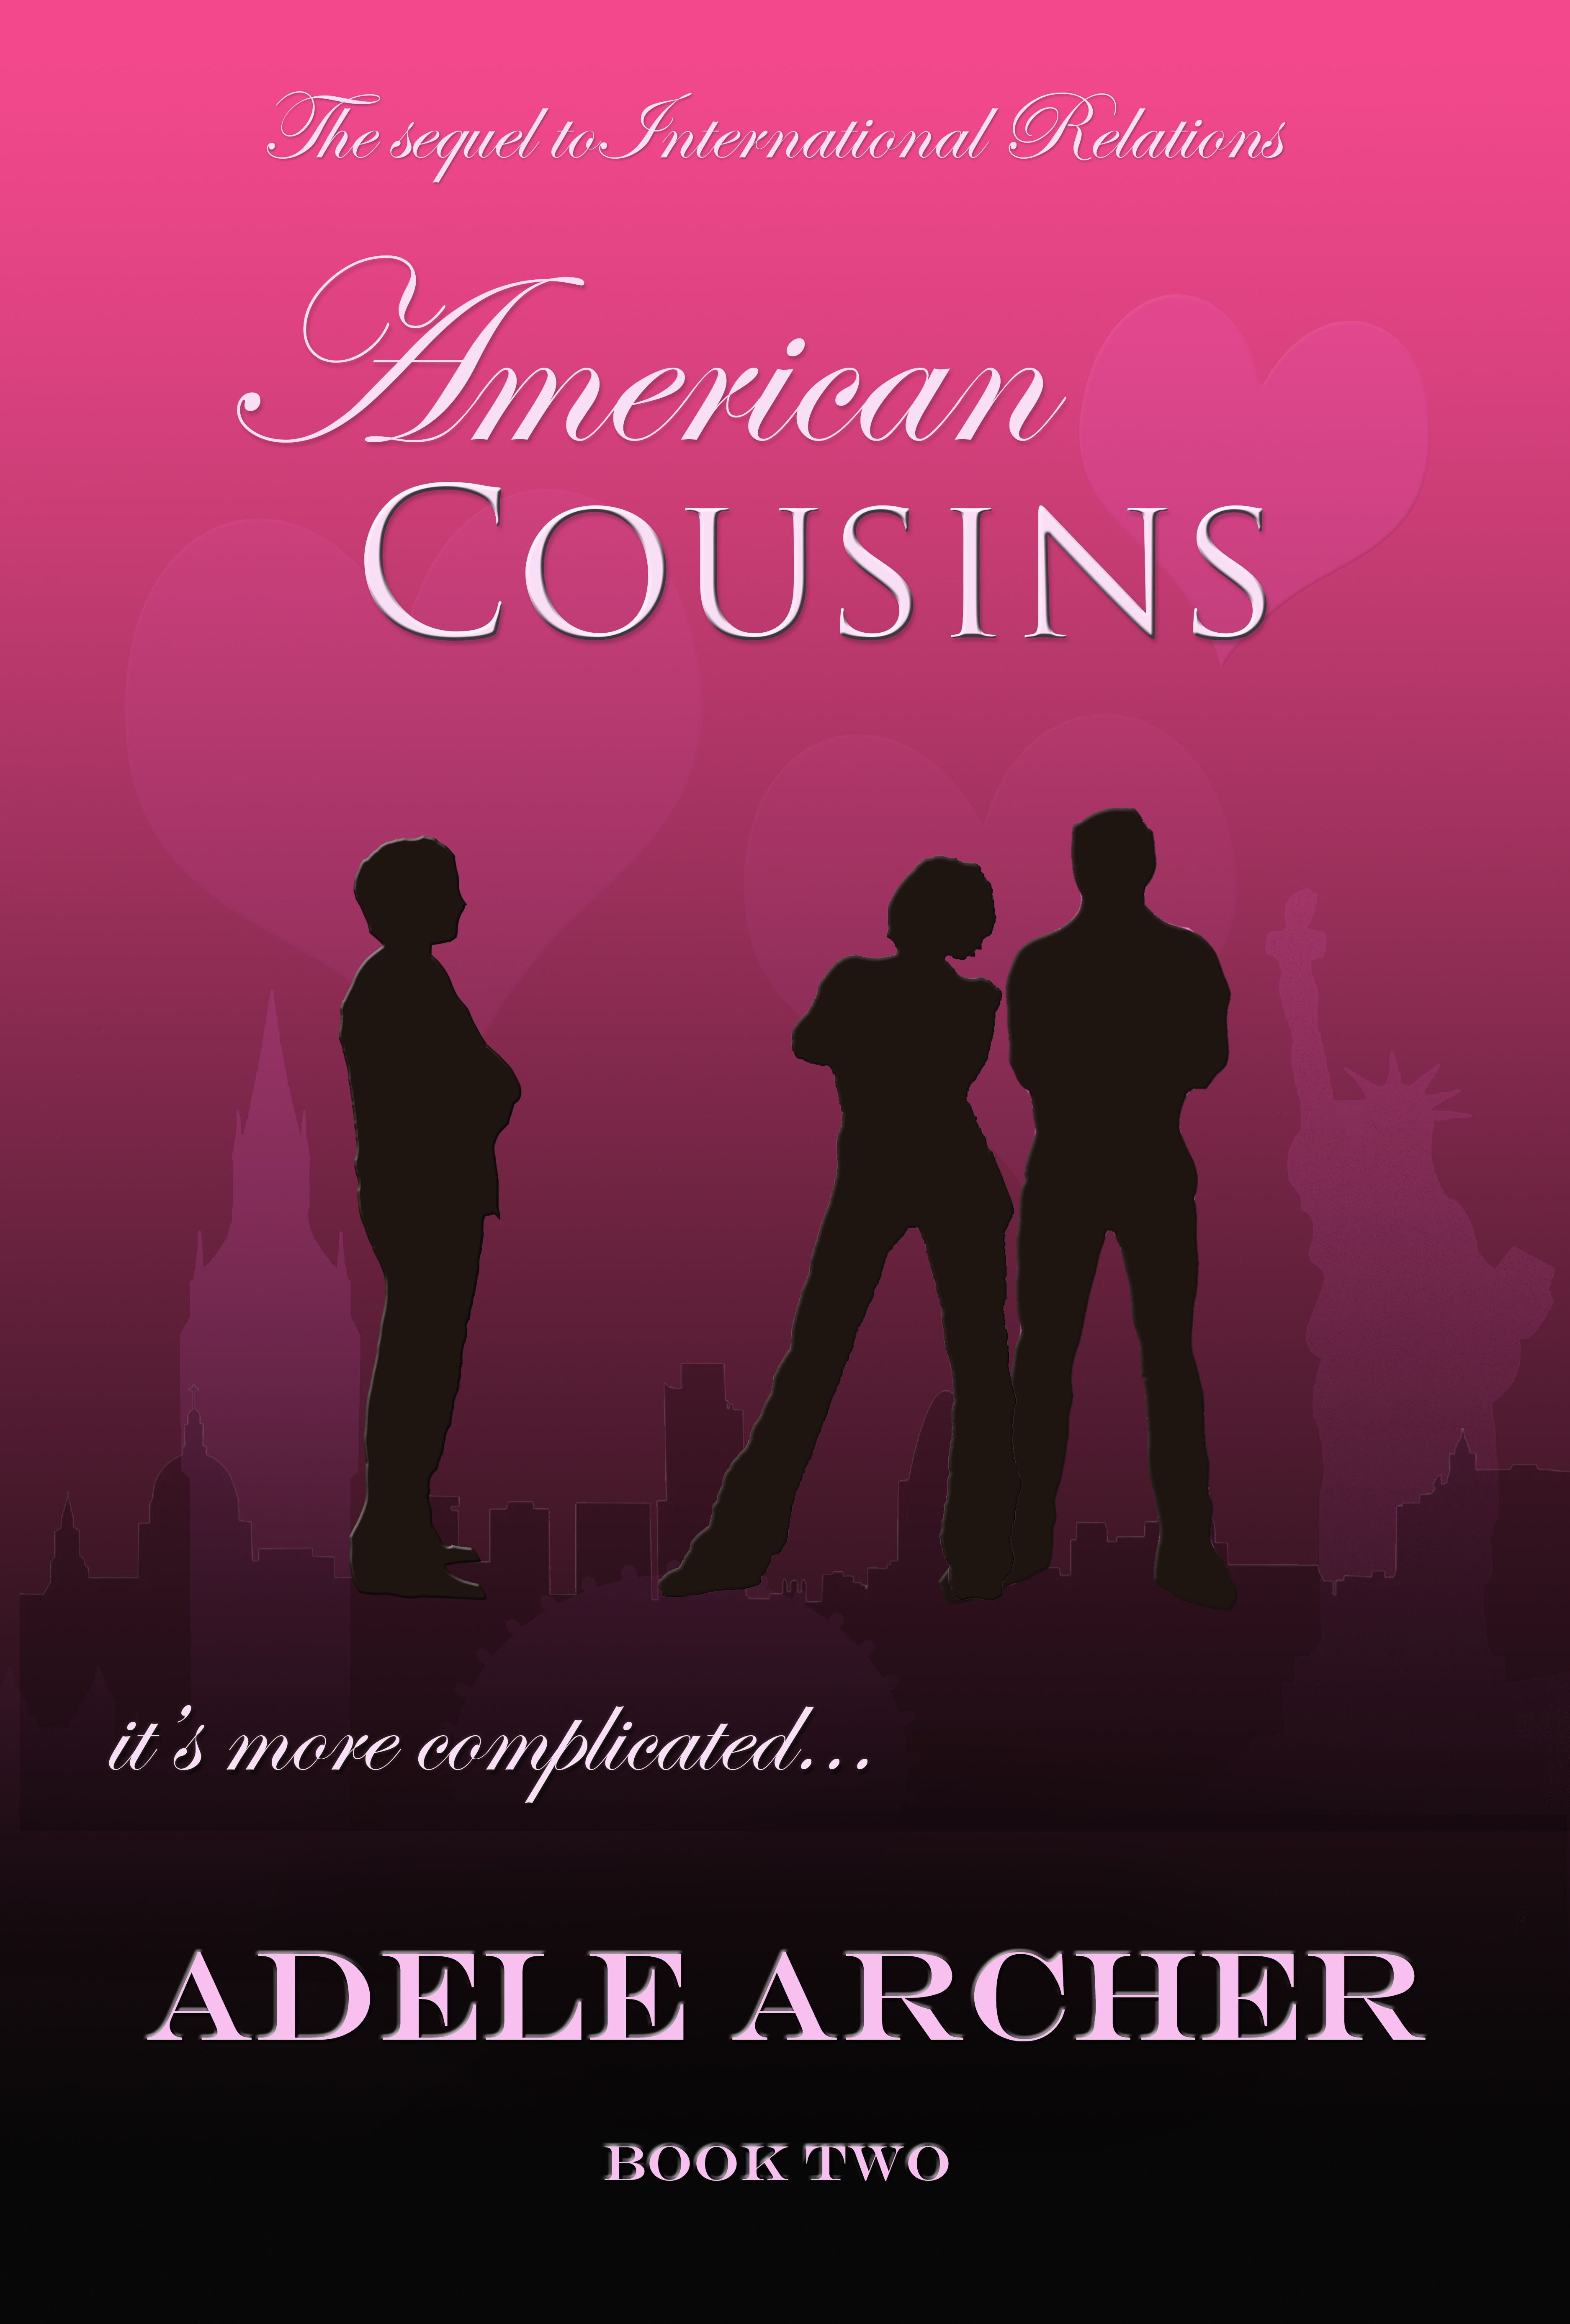 American Cousins Book Cover Httpswwwazon. Free Eviction Template. Sample Of Informal Letter Yours Faithfully. Free Adobe Illustrator Templates. Team Vacation Planner Template. Event Management Invoice Template 003139. Personal To Do List Template. Safe Mode Windows 10 Template. Freight Claim Form Template